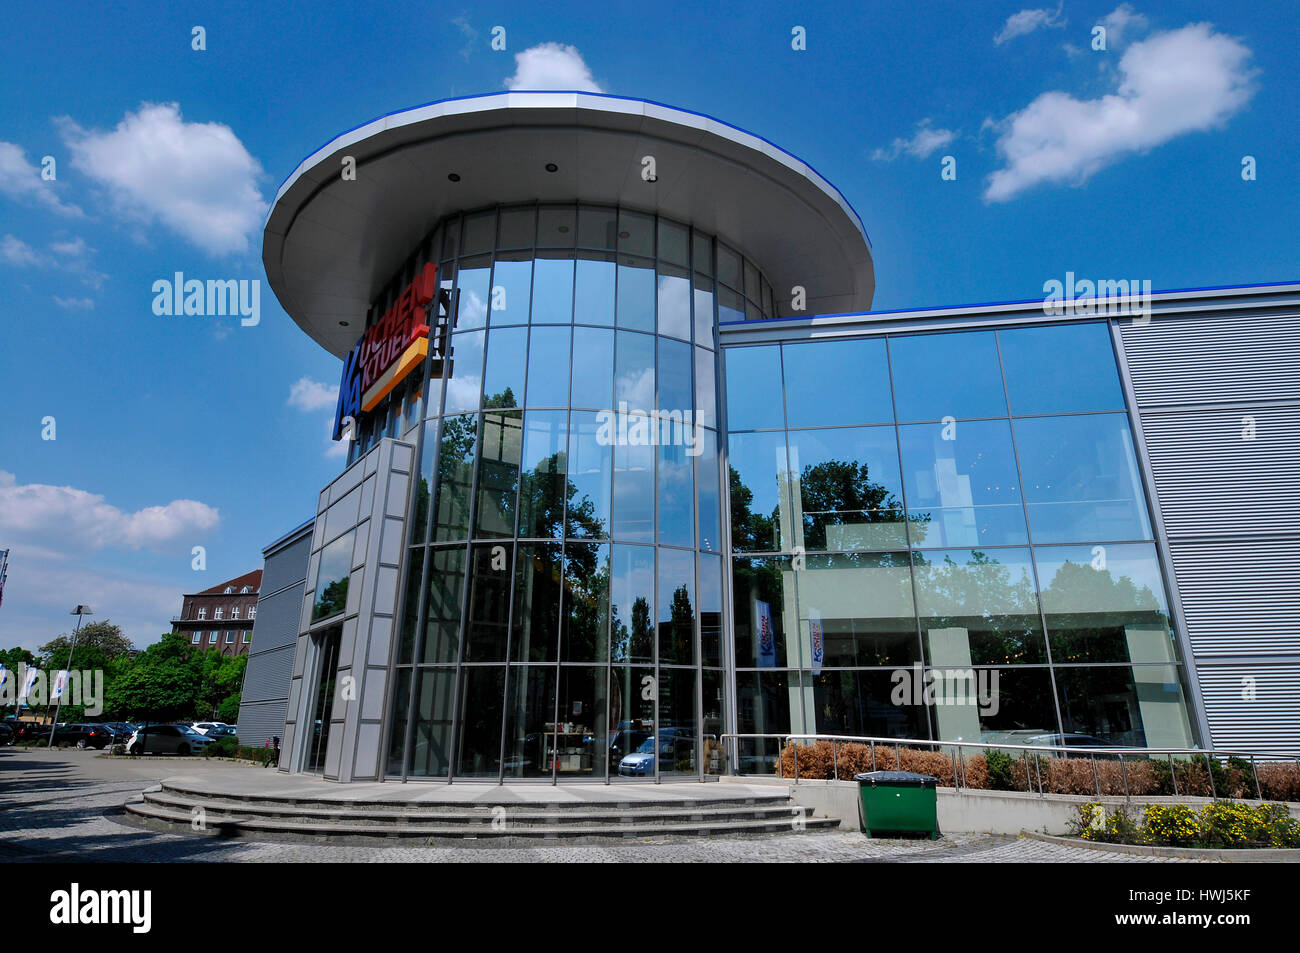 Aktuell Stock Photos Aktuell Stock Images Alamy